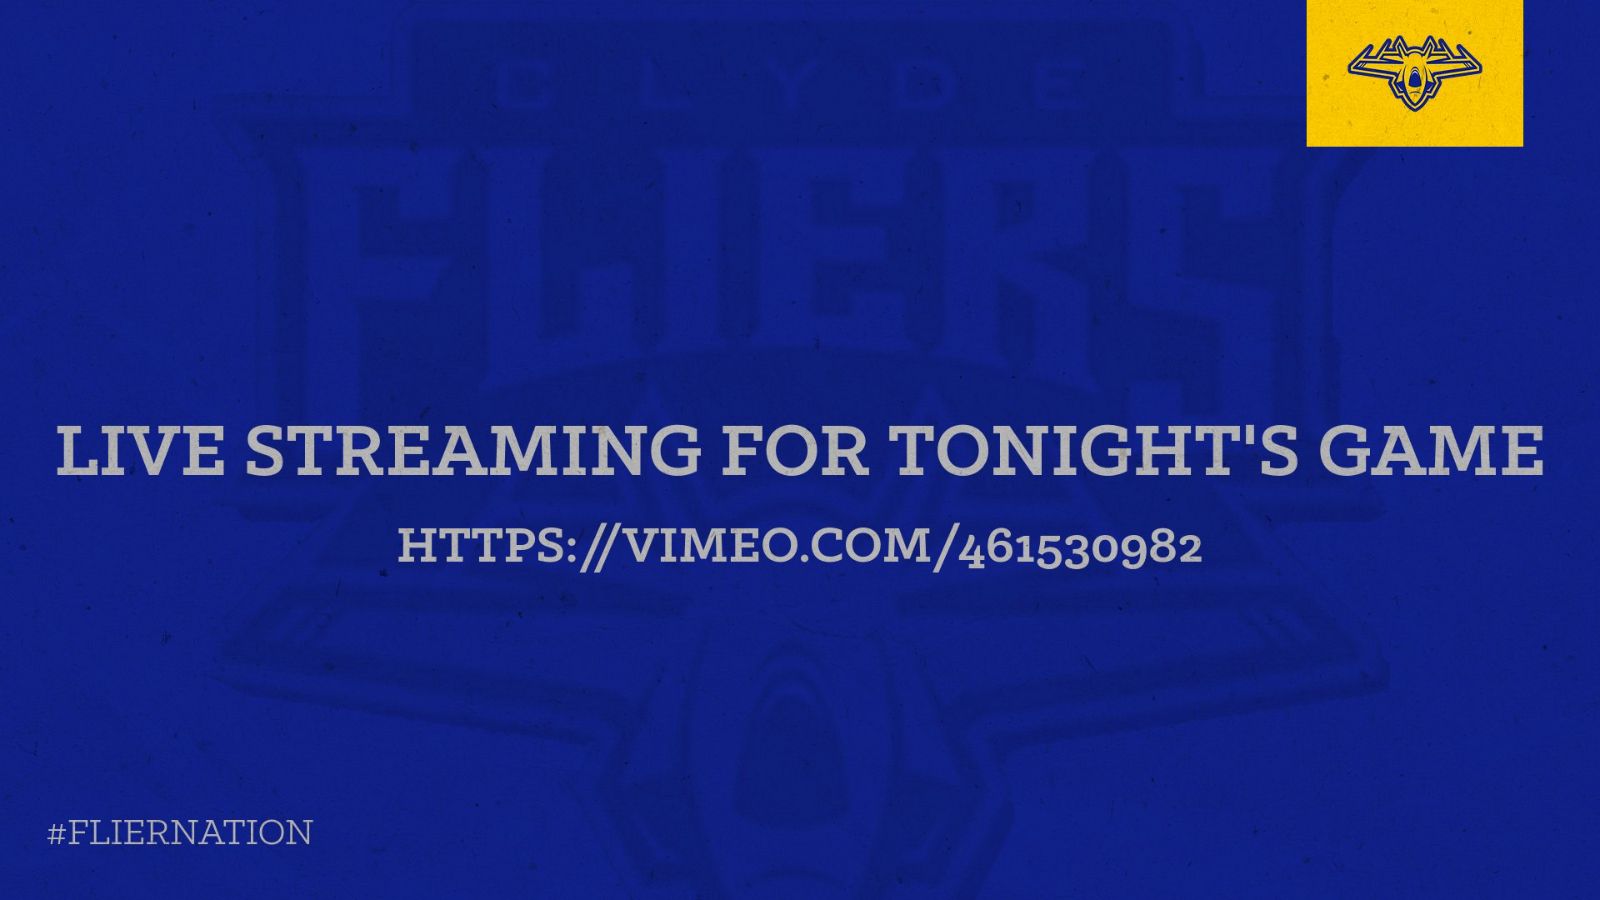 Live stream for tonight's game!